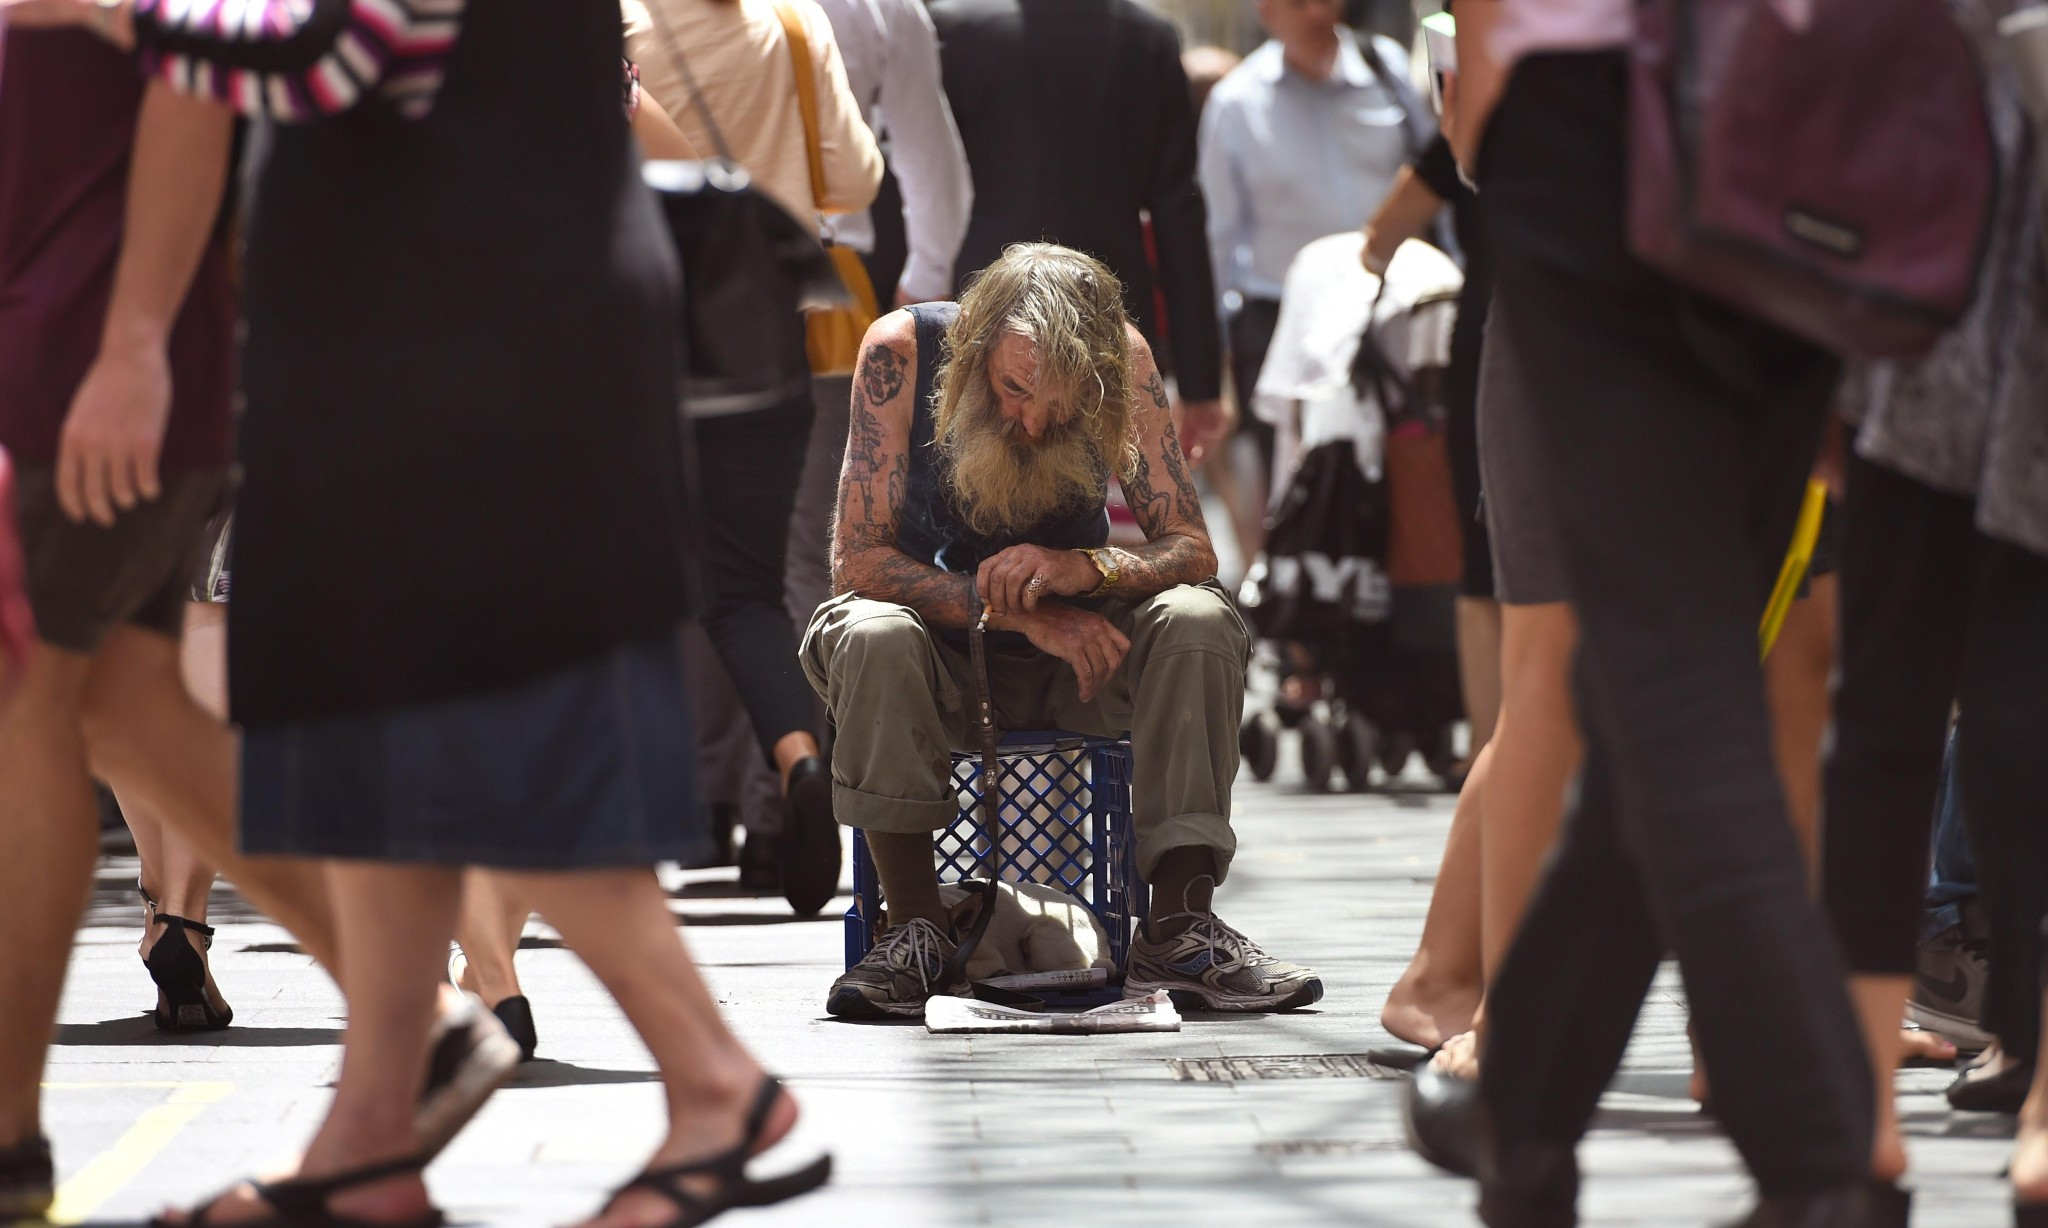 Australian inequality rising as top 20% increase wealth and income – report